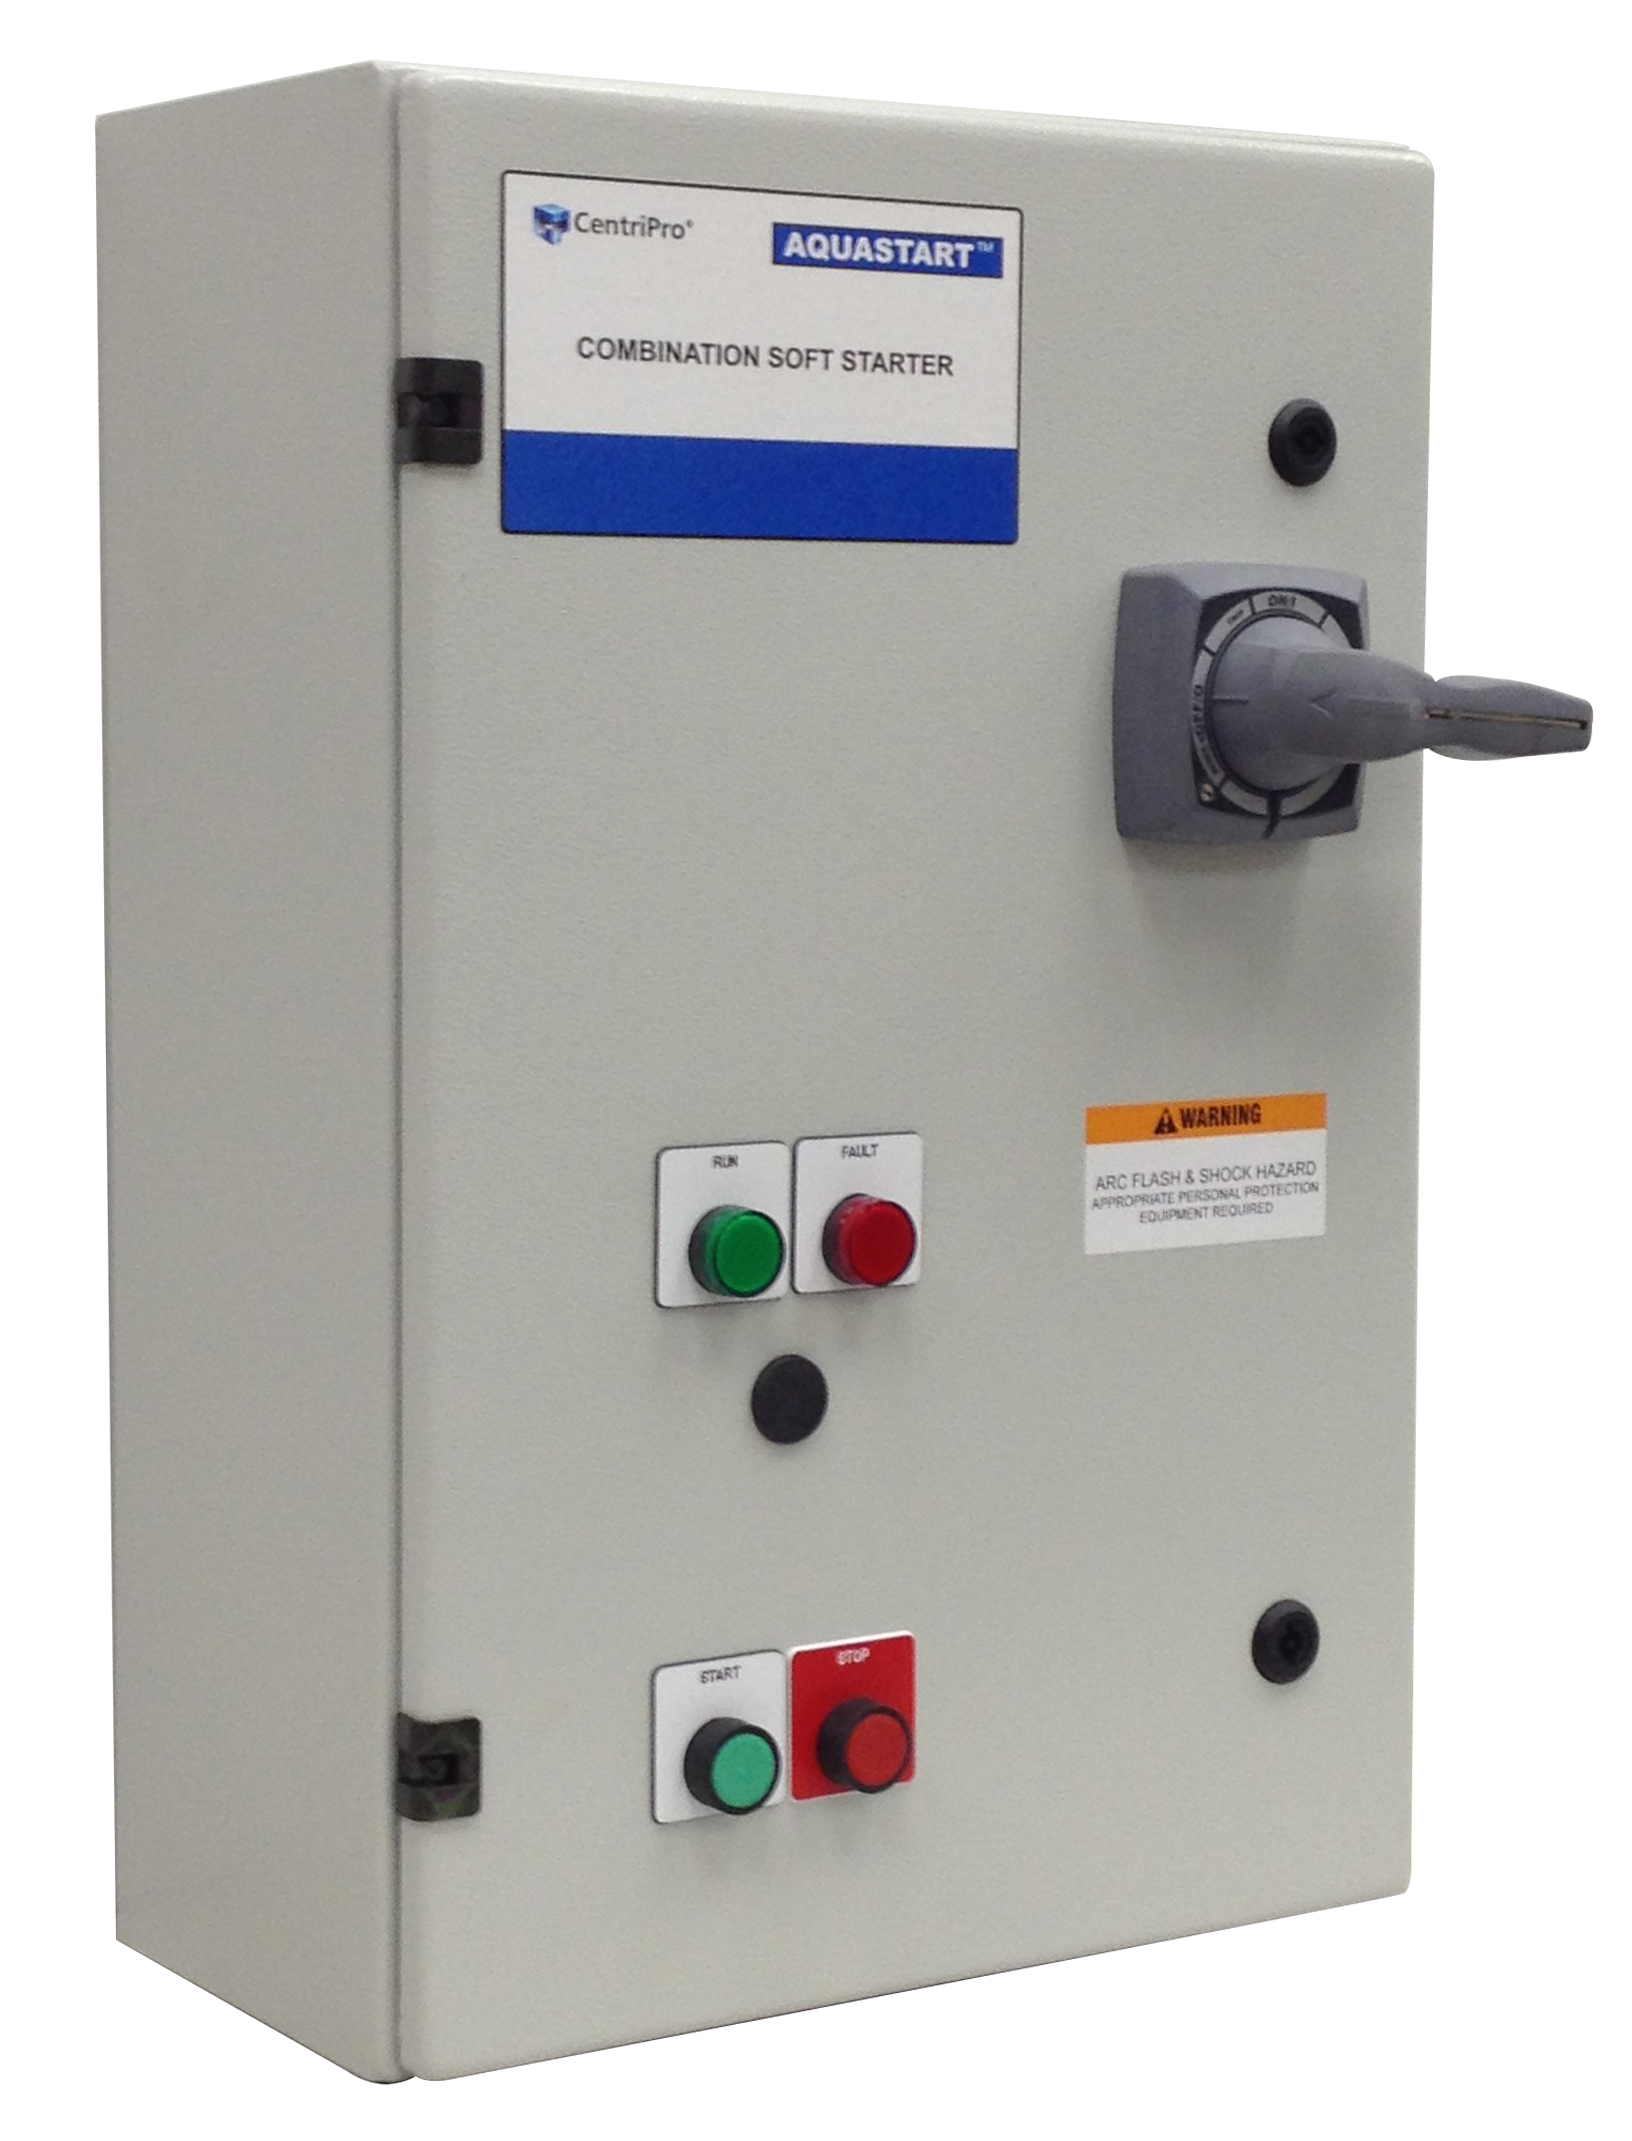 hight resolution of aquastart combination soft starters